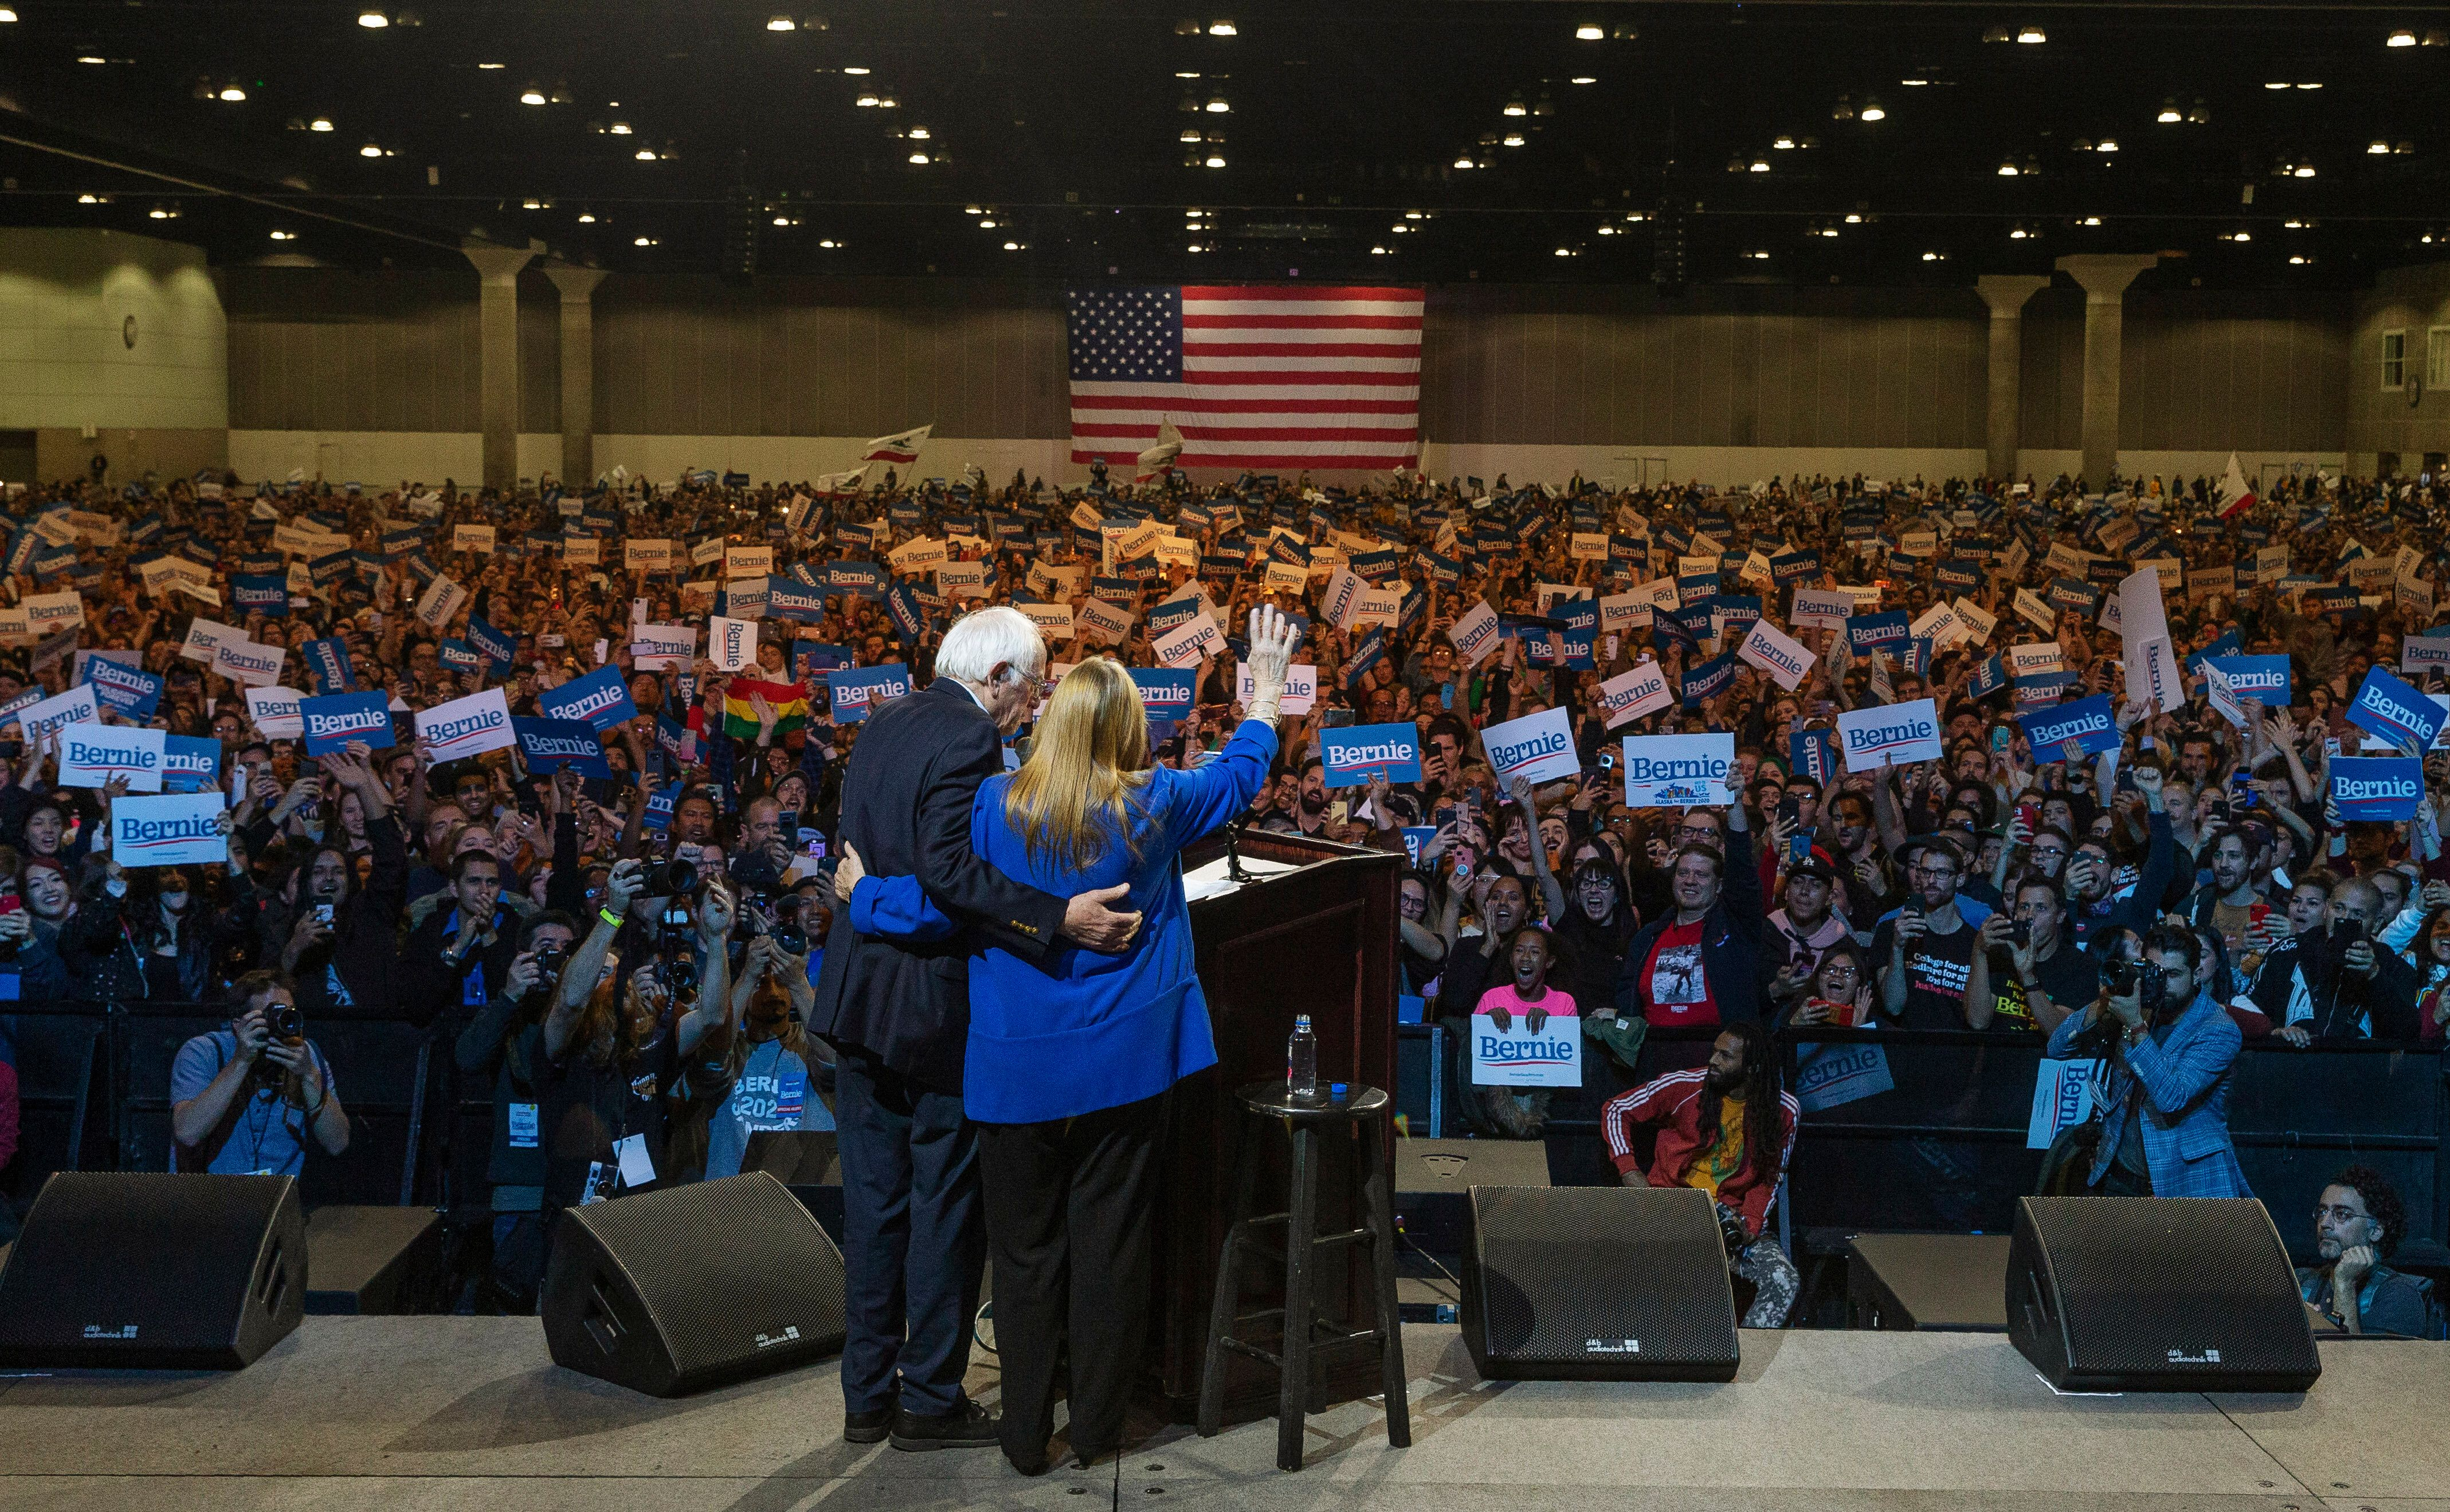 Jane Sanders and Sen. Bernie Sanders (I-Vt.) wave at supporters in Los Angeles on March 1, 2020.A sweeping victory in California would give Sanders a massive advantage that will be hard for his rivals to catch up to.